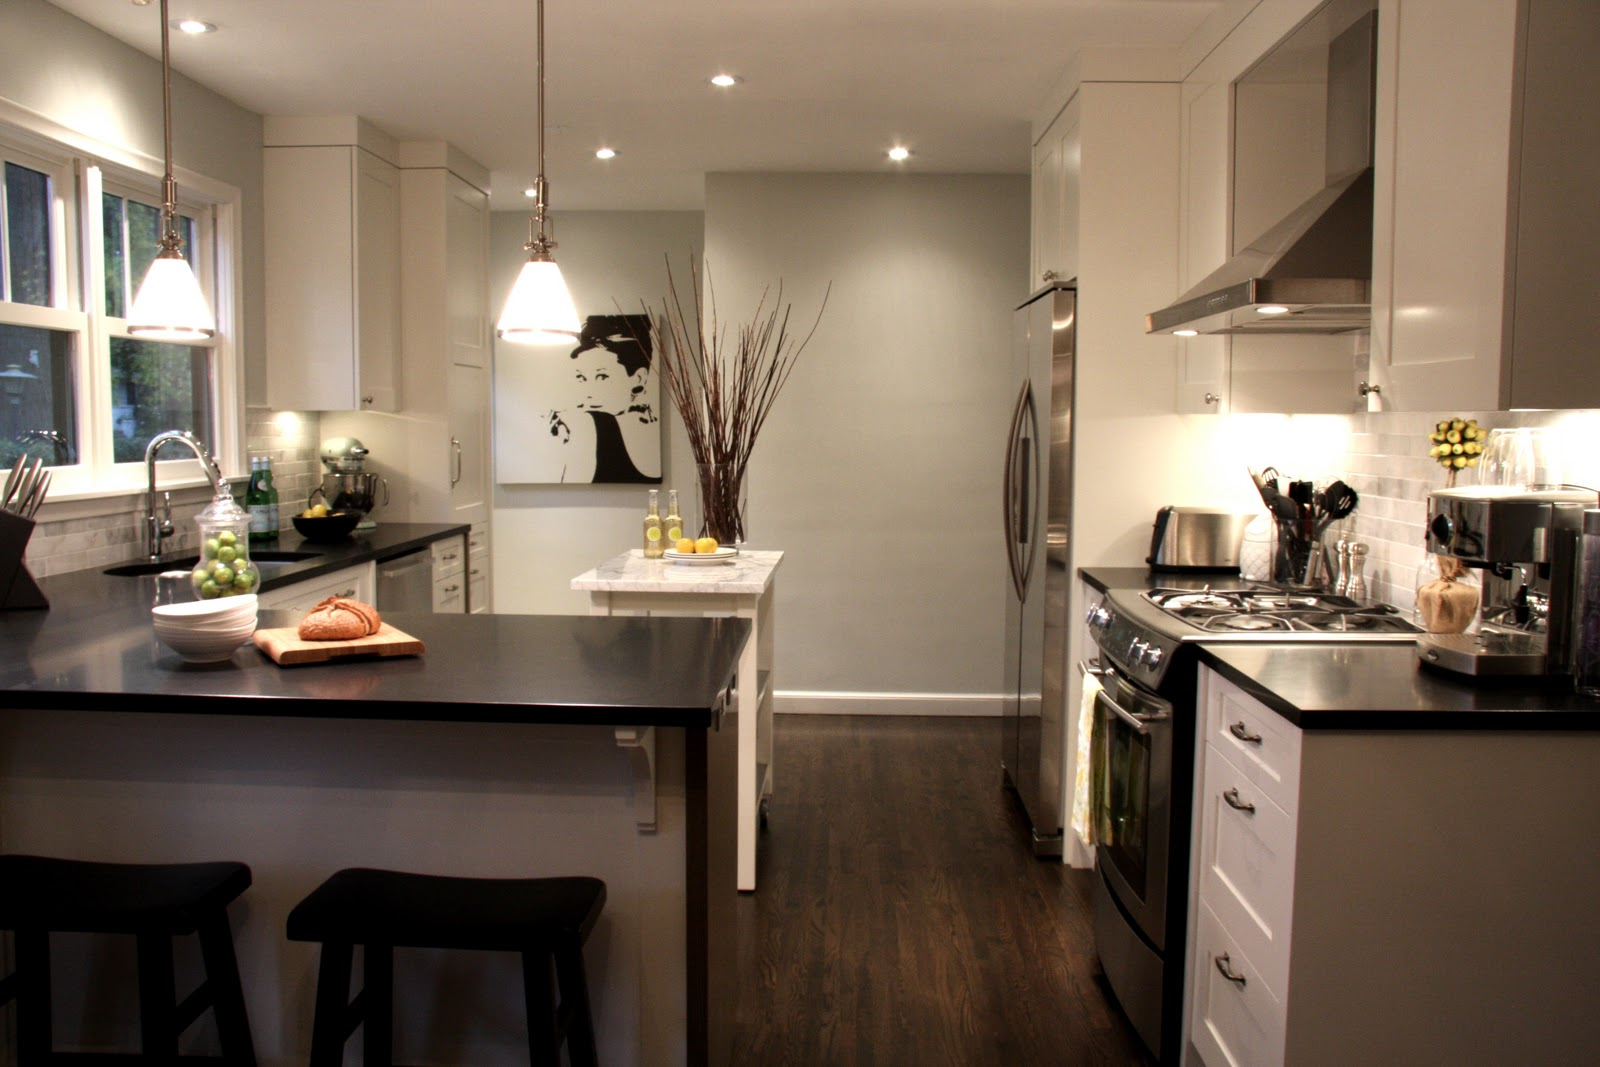 Cottage modern my new kitchen a favorite 2010 project for Kitchen configuration ideas